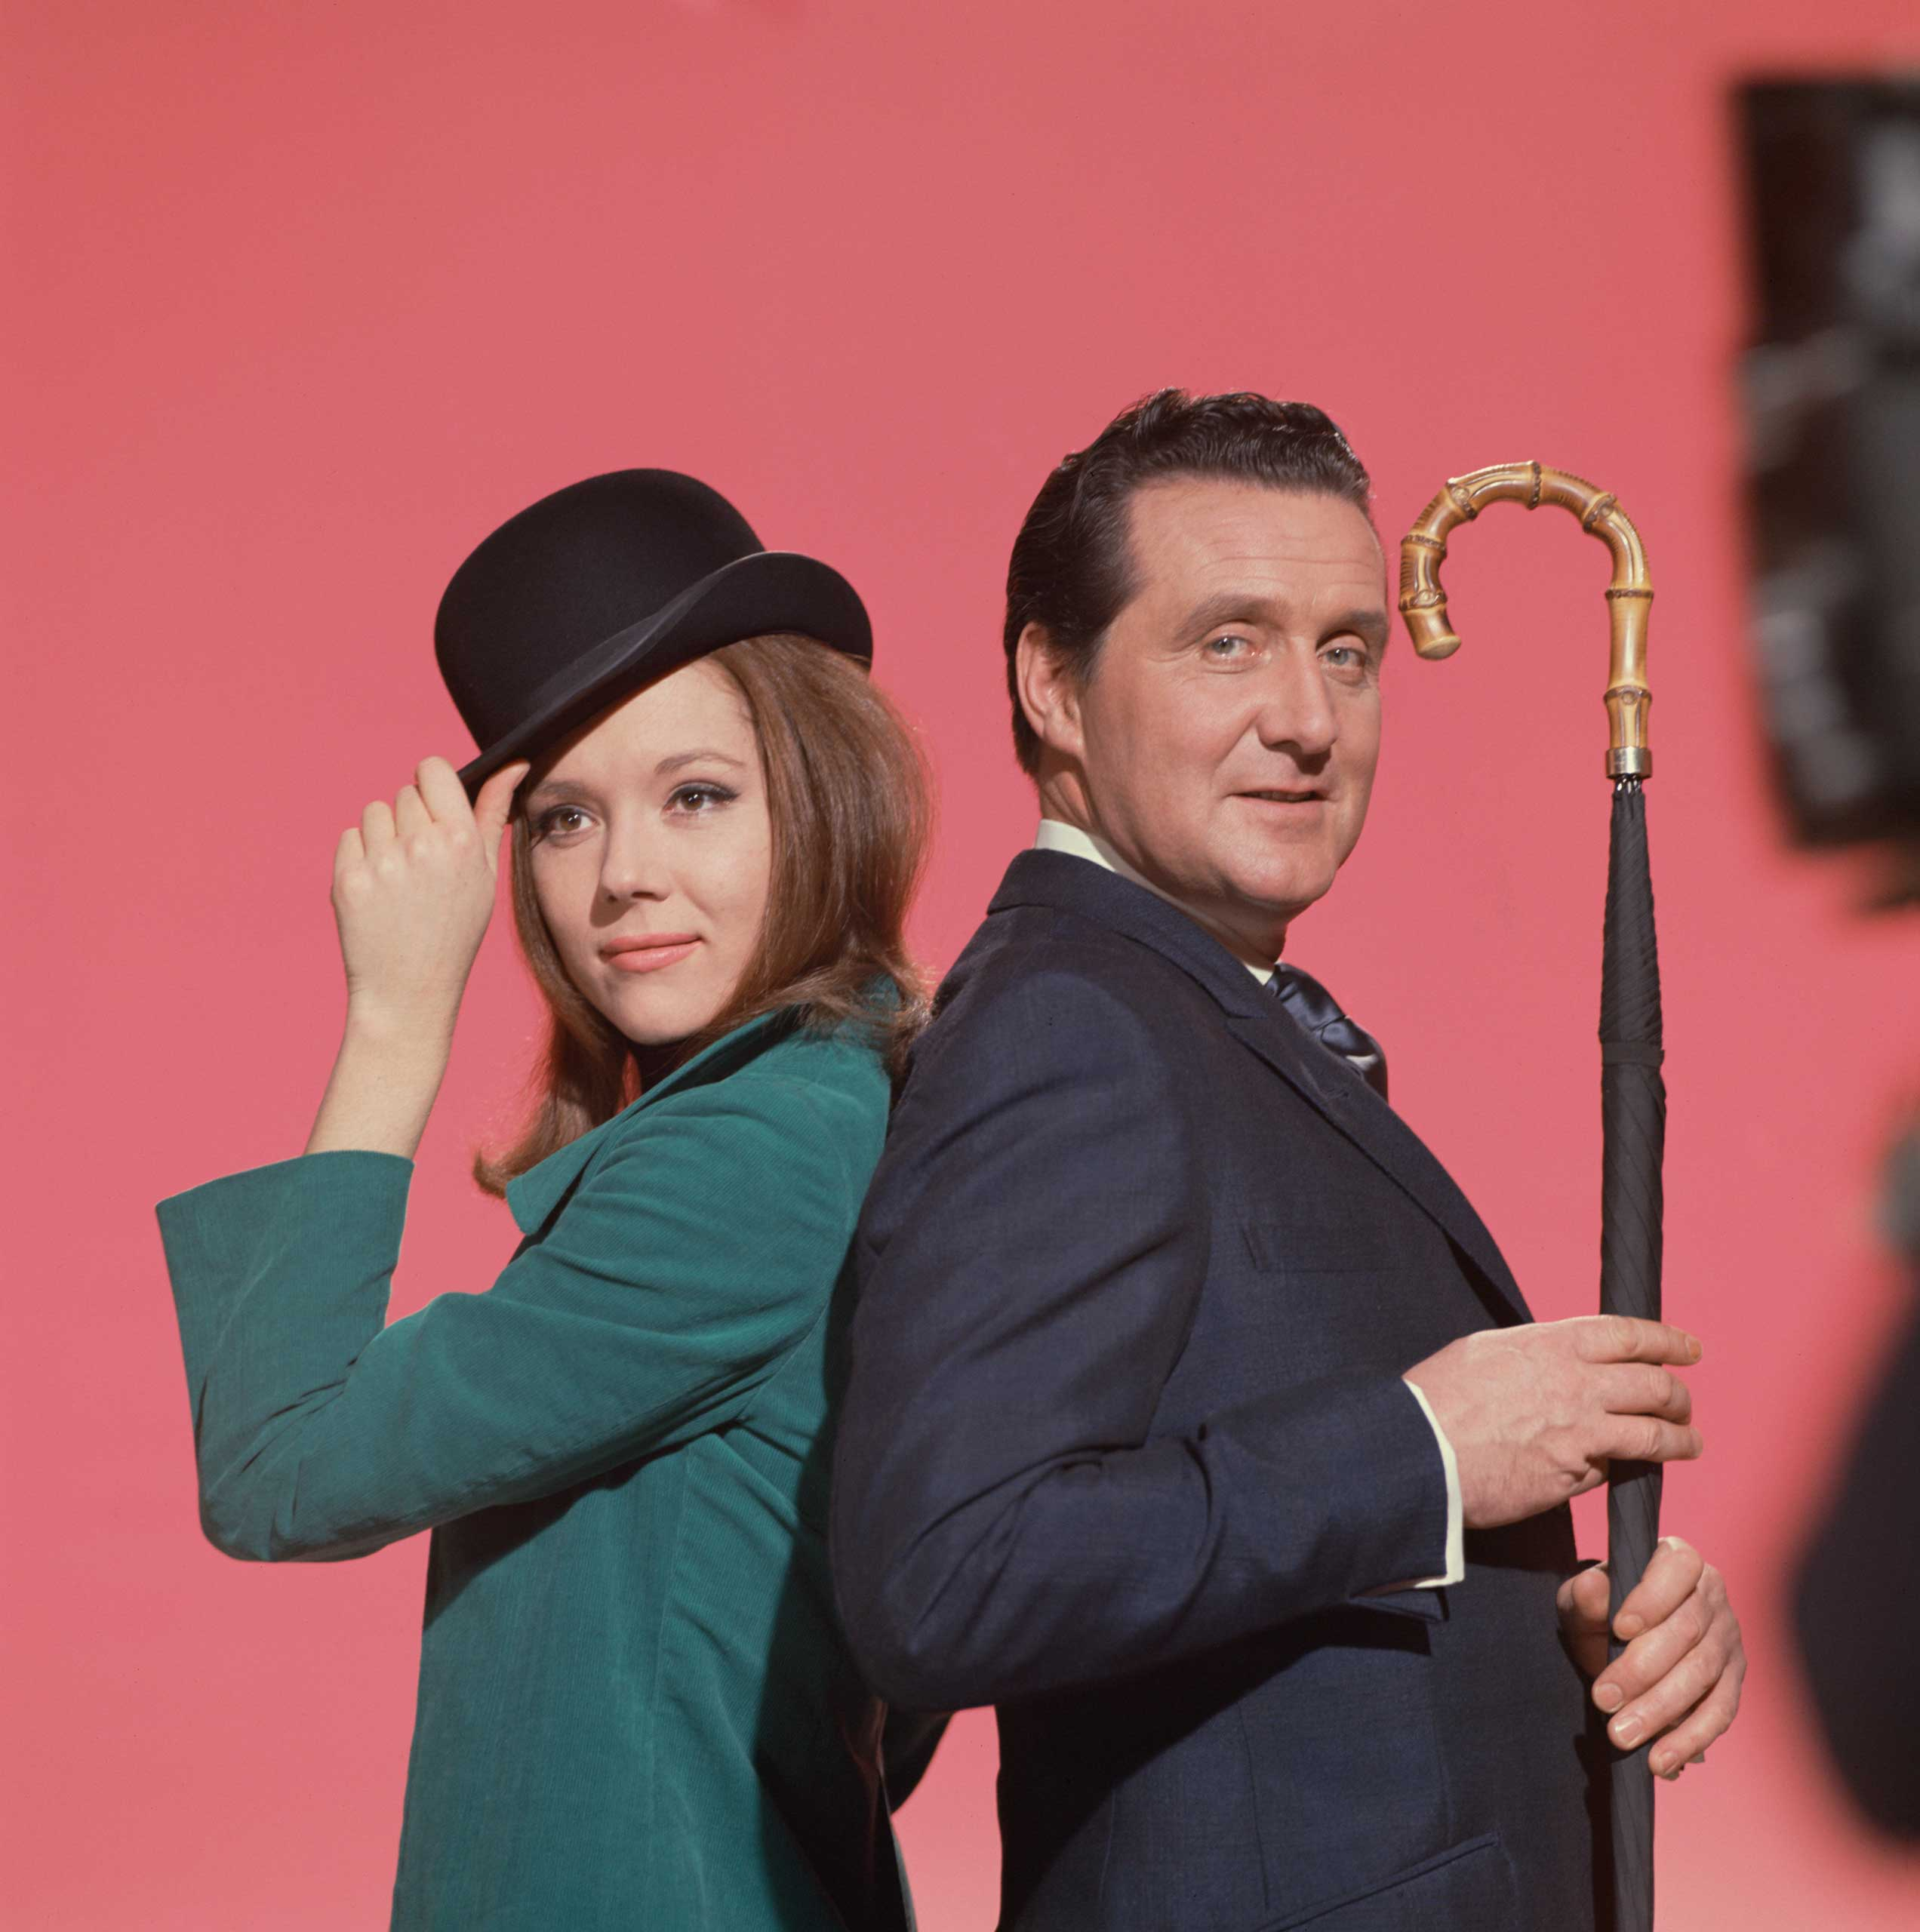 <b>The Avengers (Diana Rigg &amp; Patrick Macnee)</b>                                   Photographed for TV Times in 1964.                                   An iconic shot taken when Diana Rigg took over from Honor Blackman in the 'spy-fi' classic. The name Emma Peel derived from the writers' attempts to create a character with Man Appeal.